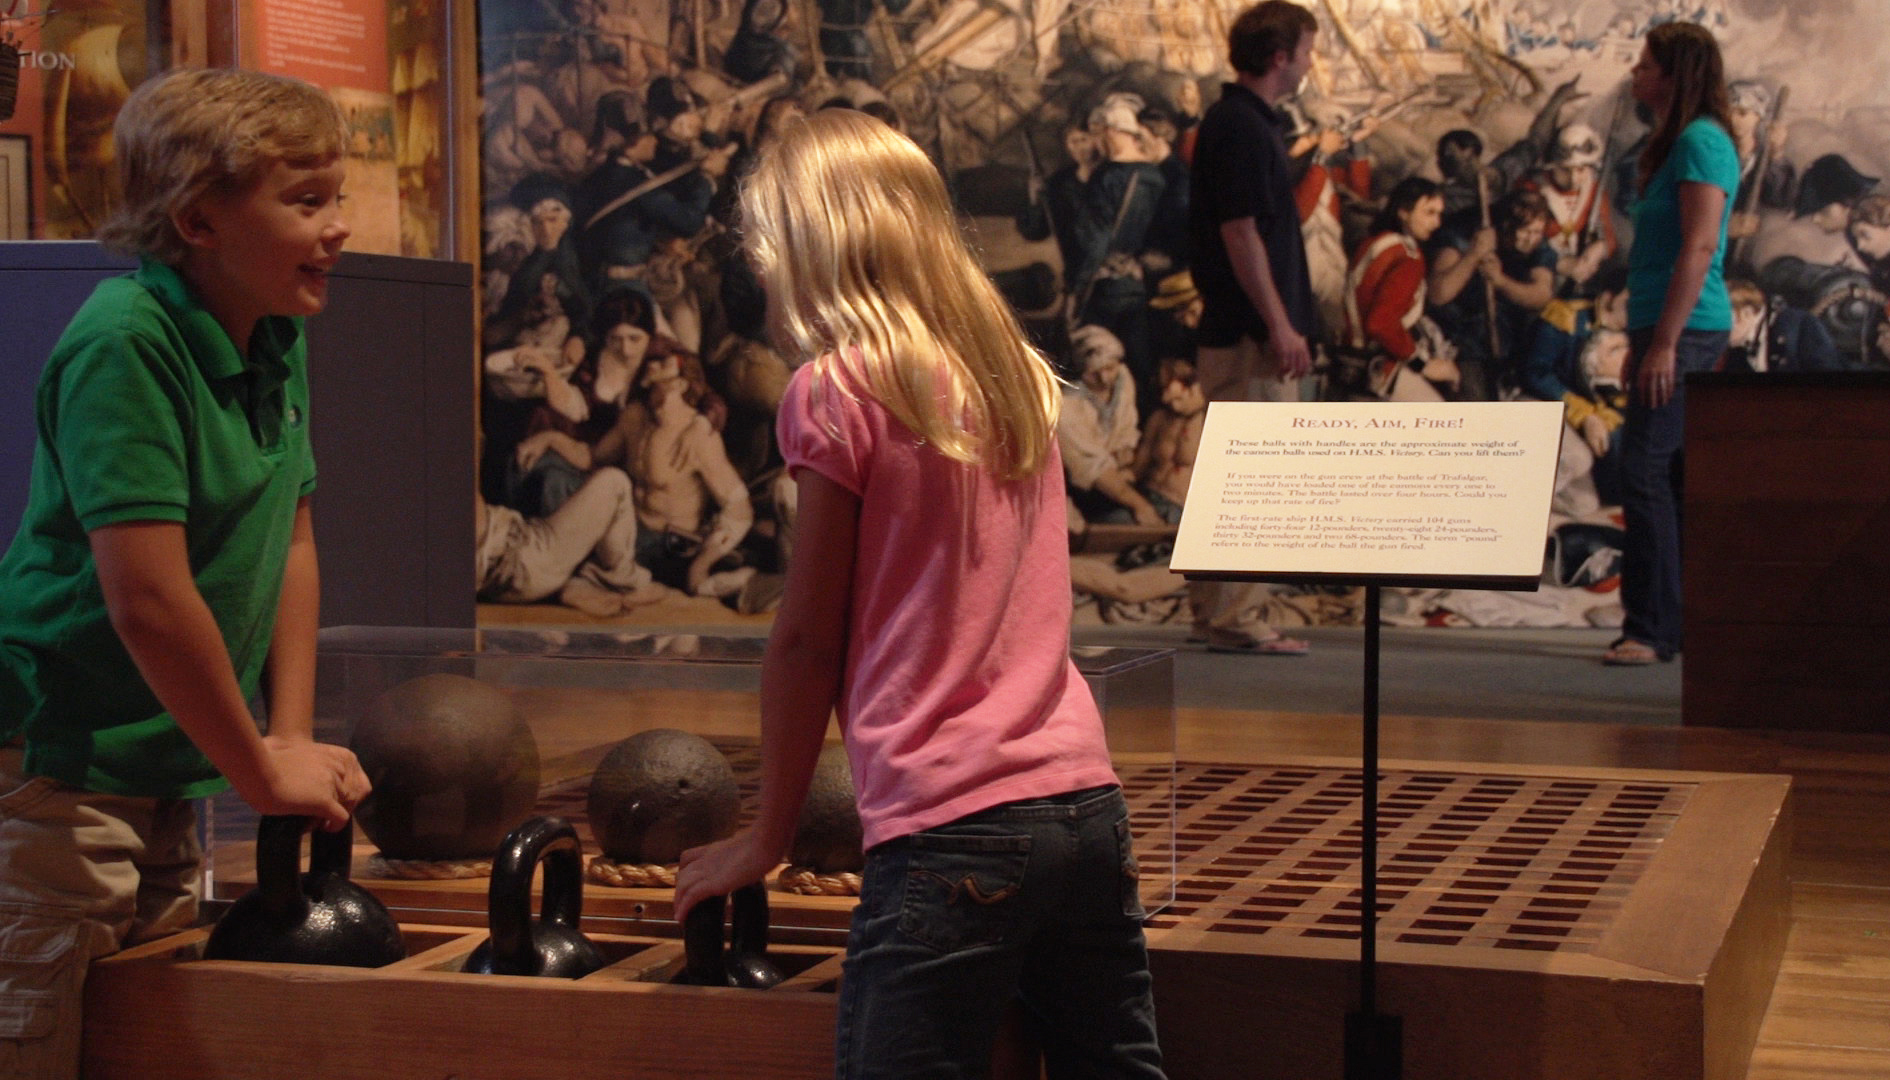 Lifting cannonballs in The Nelson Gallery